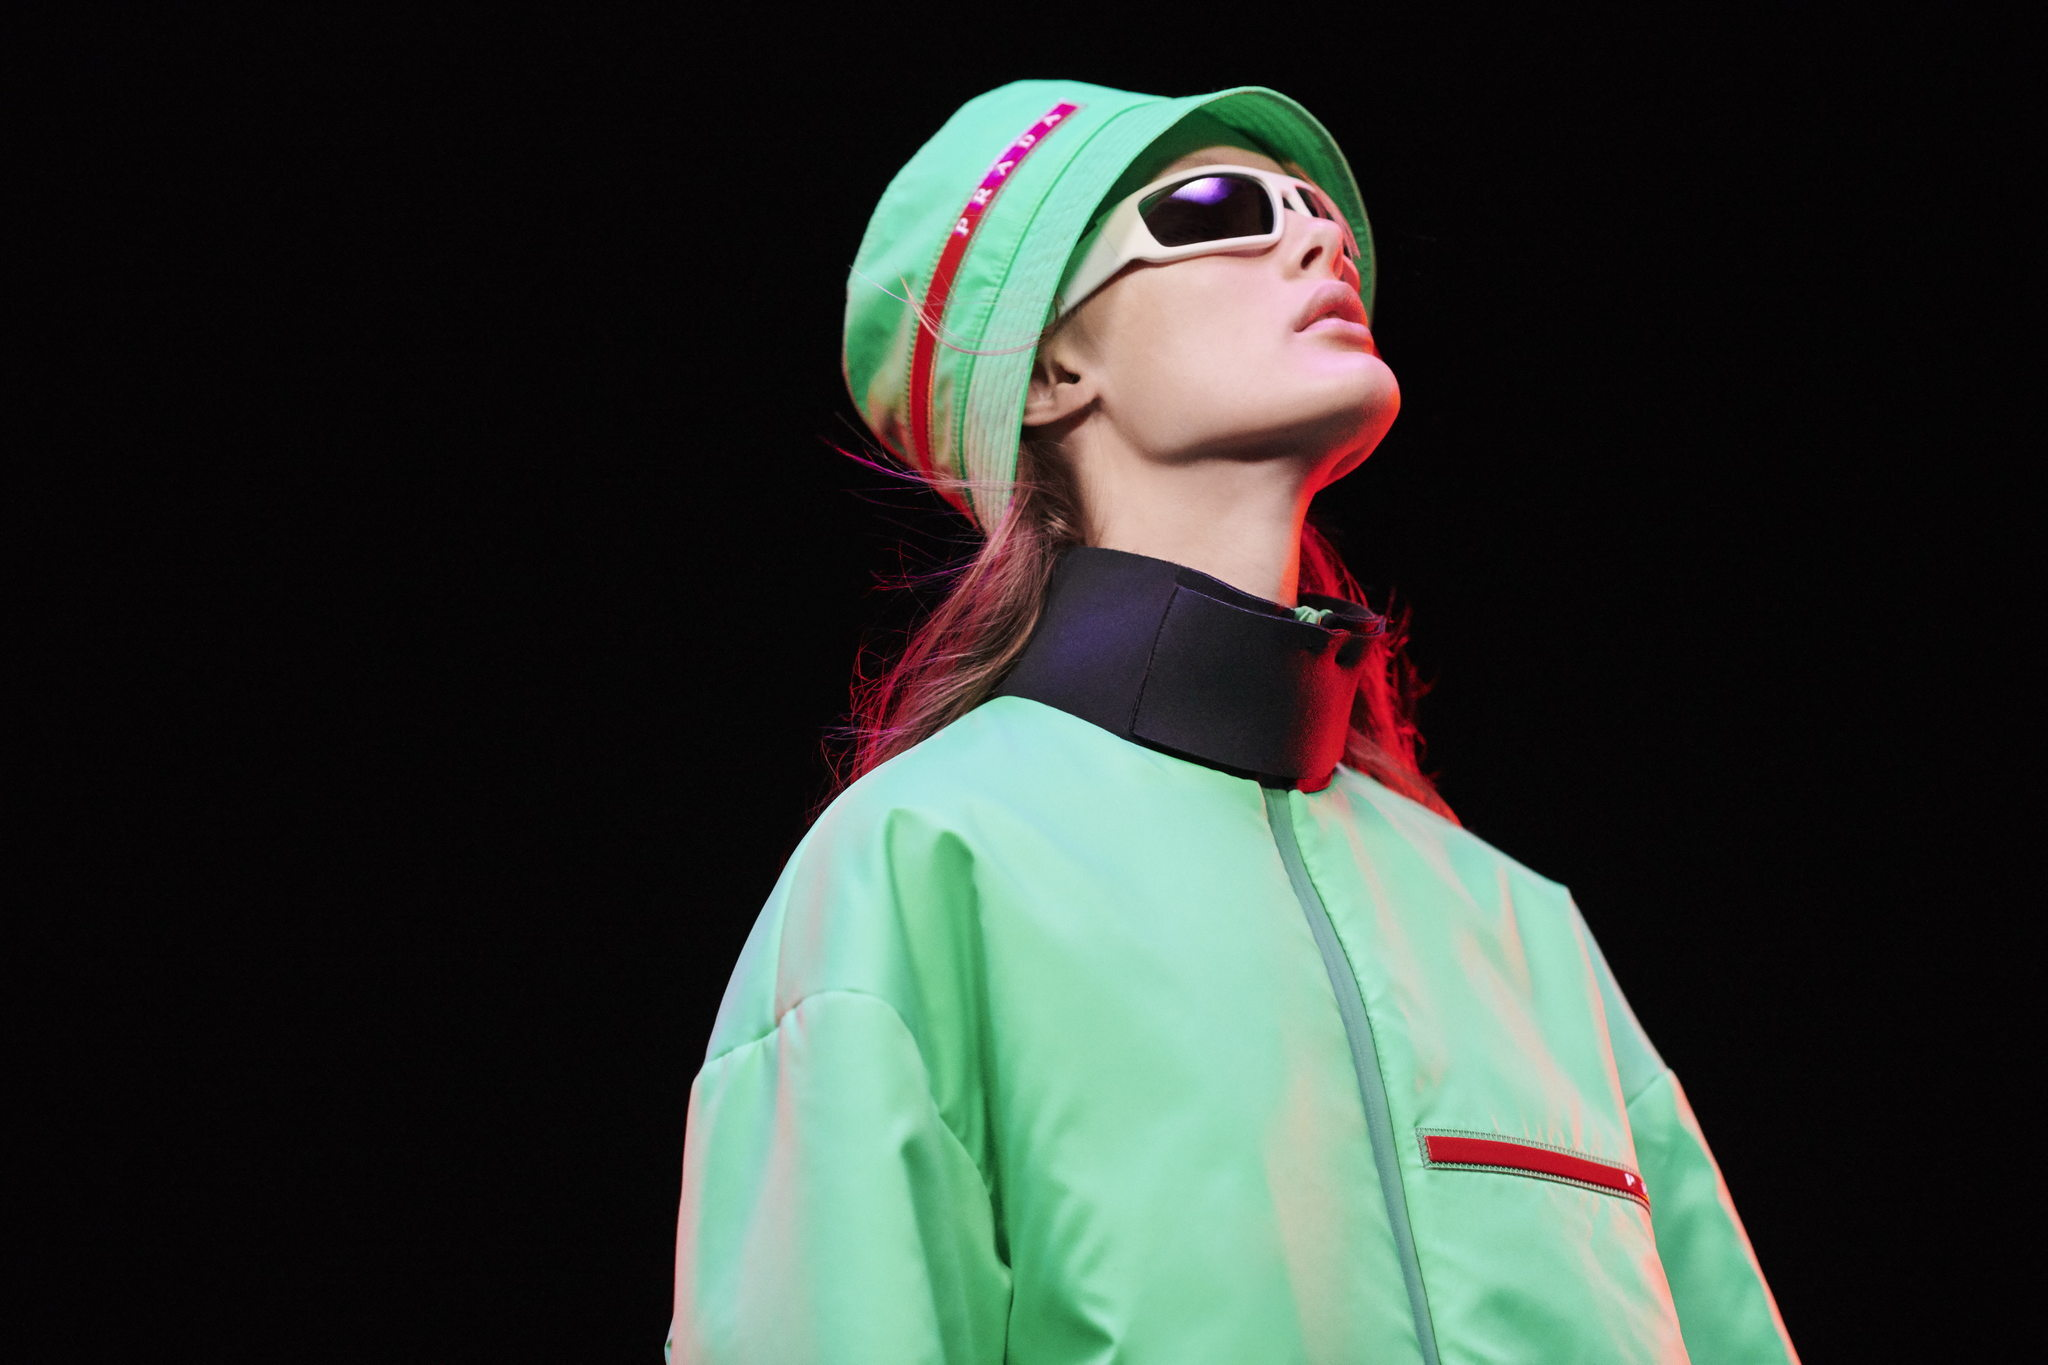 news, prada, fashion news, sustainable innovation, sustainable fabric, carbon and toxic free manufacturing, f w 2020, fall winter collection, linea Rossa, extreme tex, recycled polyester, thermoregulatory fabric, antibacterial textile, Chanyeol Park, fashion campaign, prada fw2020, Yara Shahidi, Jin Chen, waterproof jacket, sustainable fashion, Tec Rec Eggshell, raincoat, sustainable luxury, fashion news, sustainable news, eco news, green news, sustainabile design